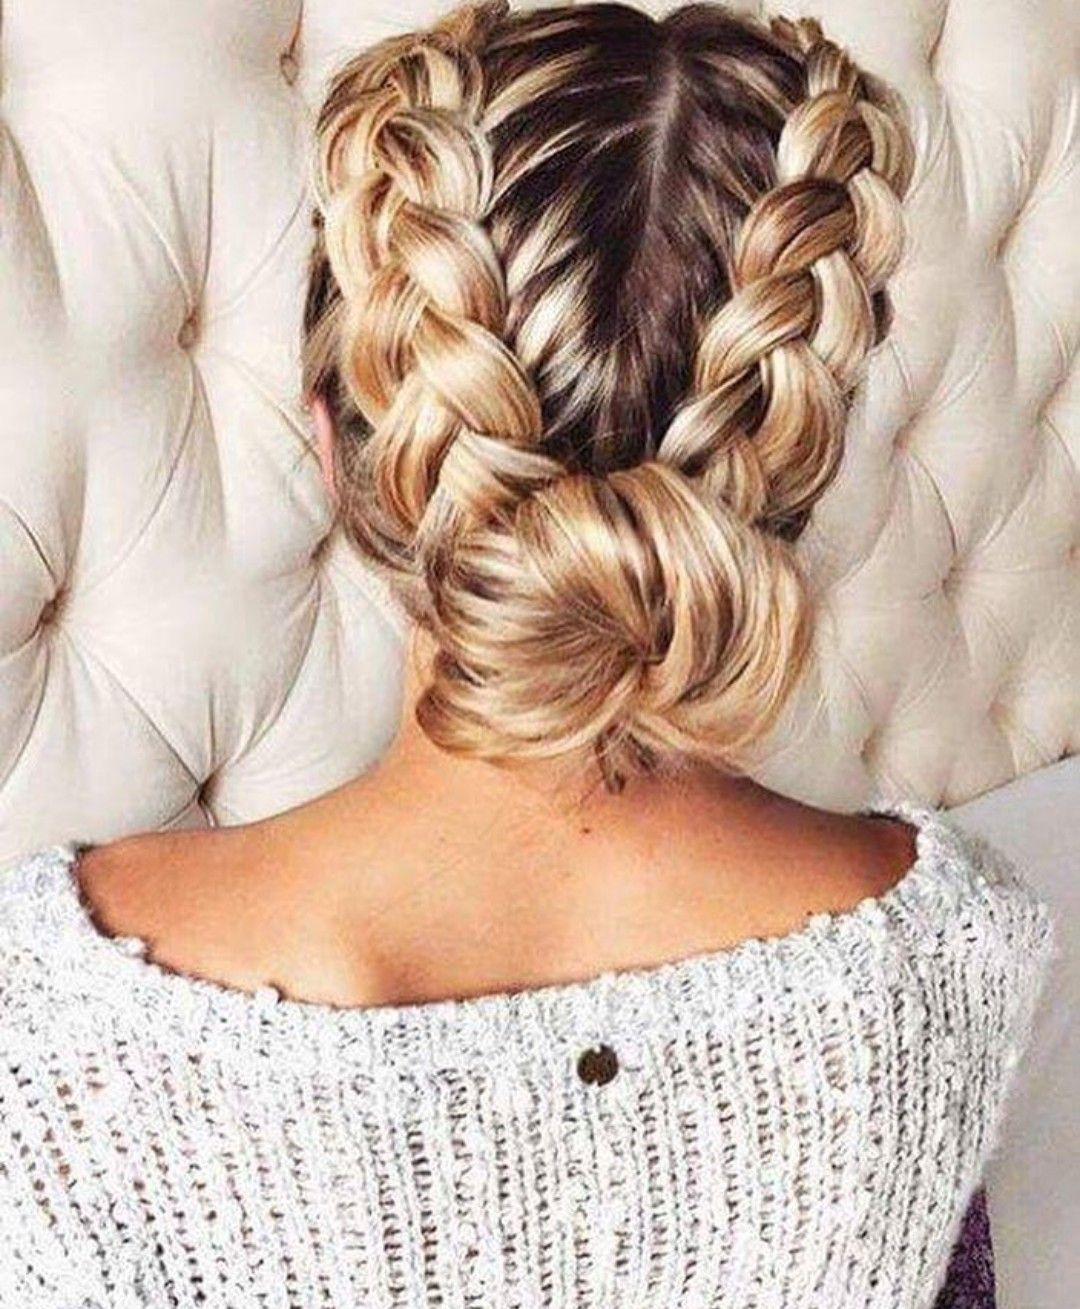 Pin by chantal fortier la sorcière on coiffure hairstyles make up